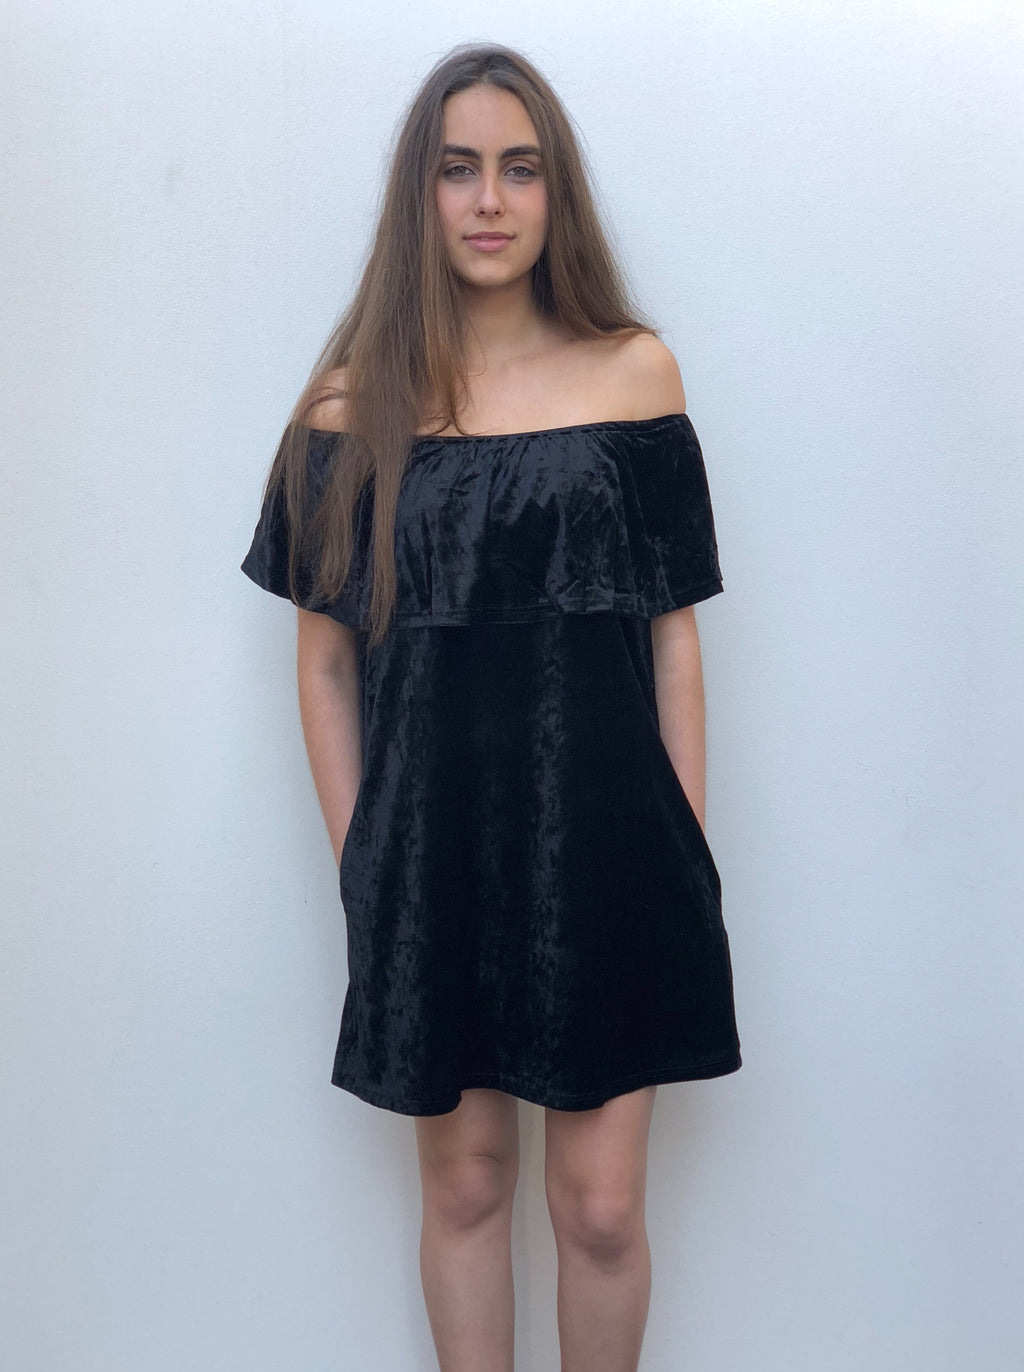 Black off-the-shoulder velvet dress with frill detailing on the chest and pockets.